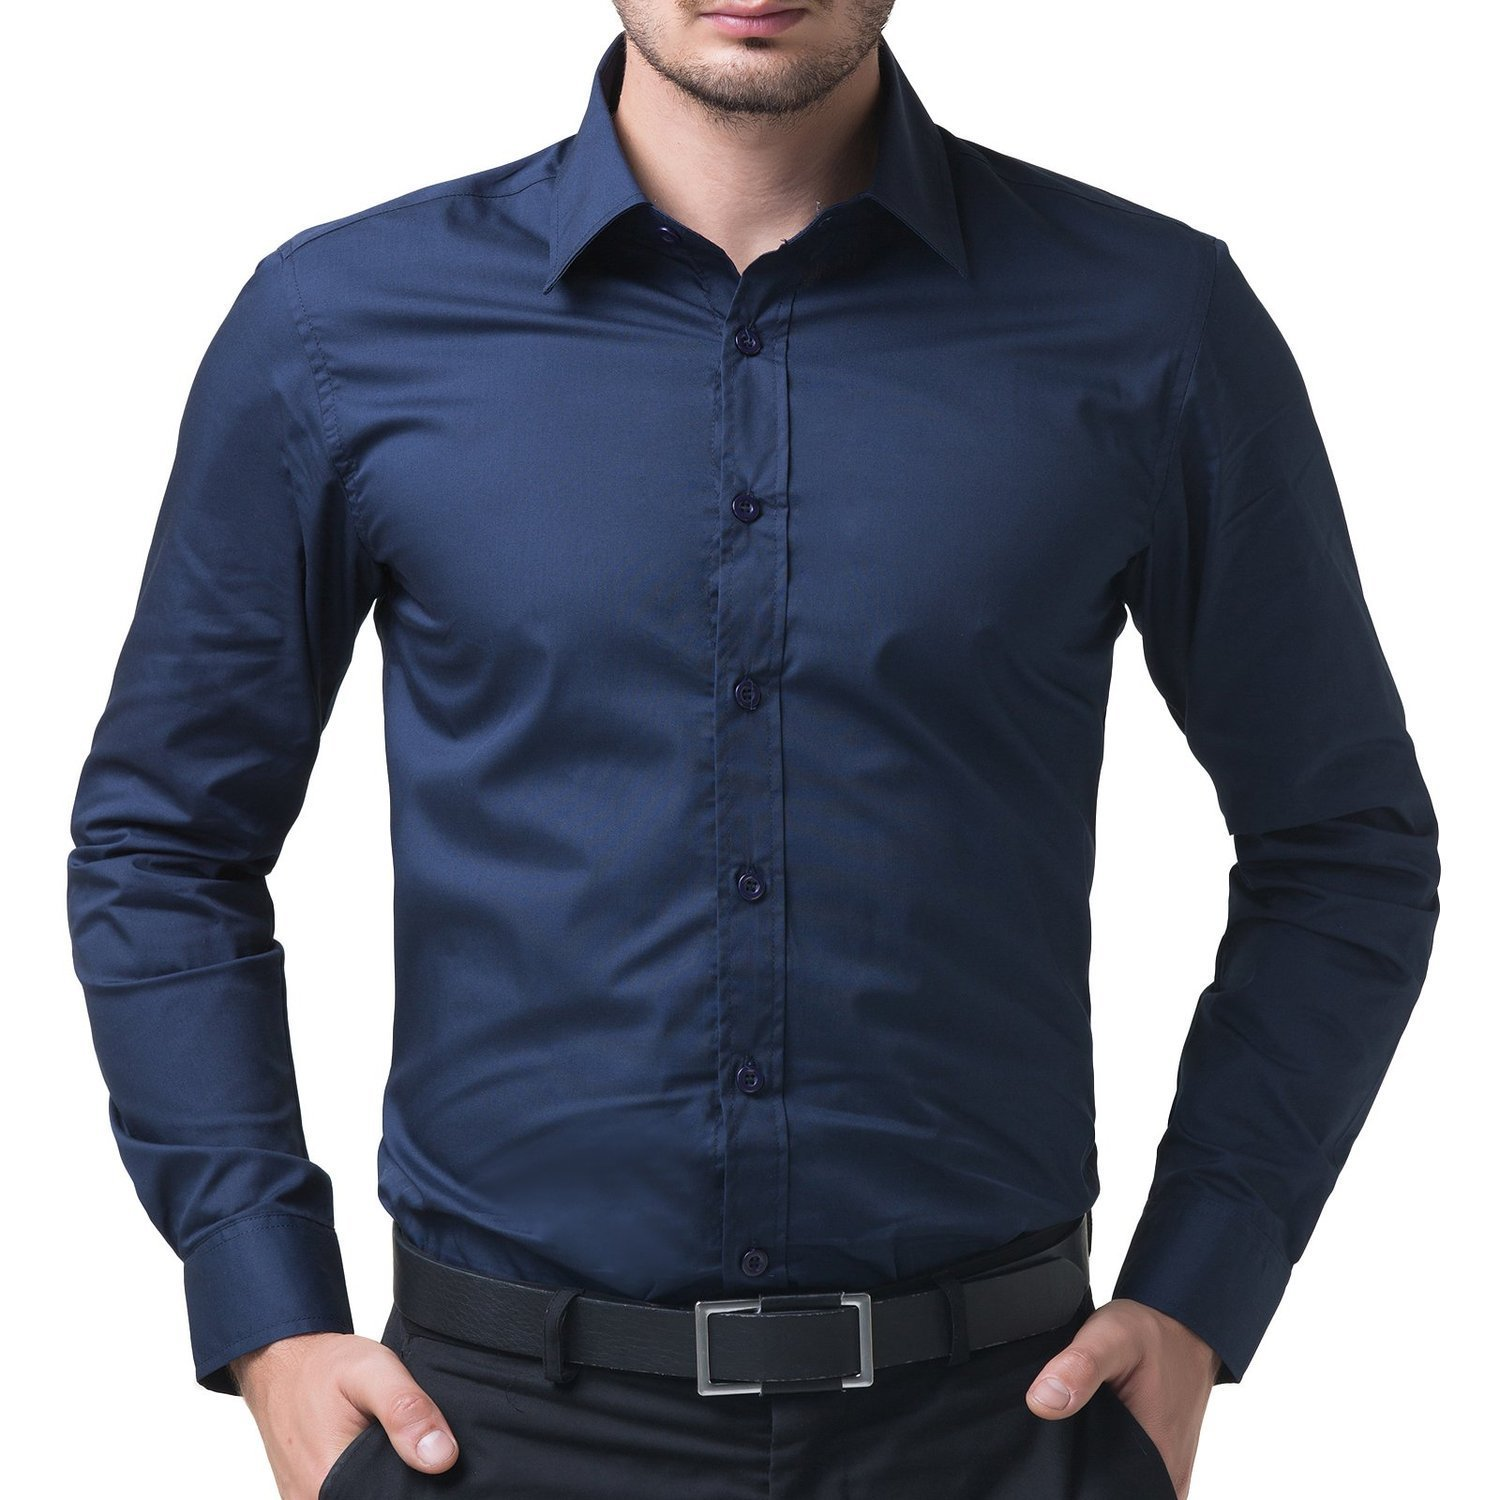 cadf73ed6f848 BEING FAB Men's Solid 100% Cotton Regular Fit Casual Navy Blue Shirt